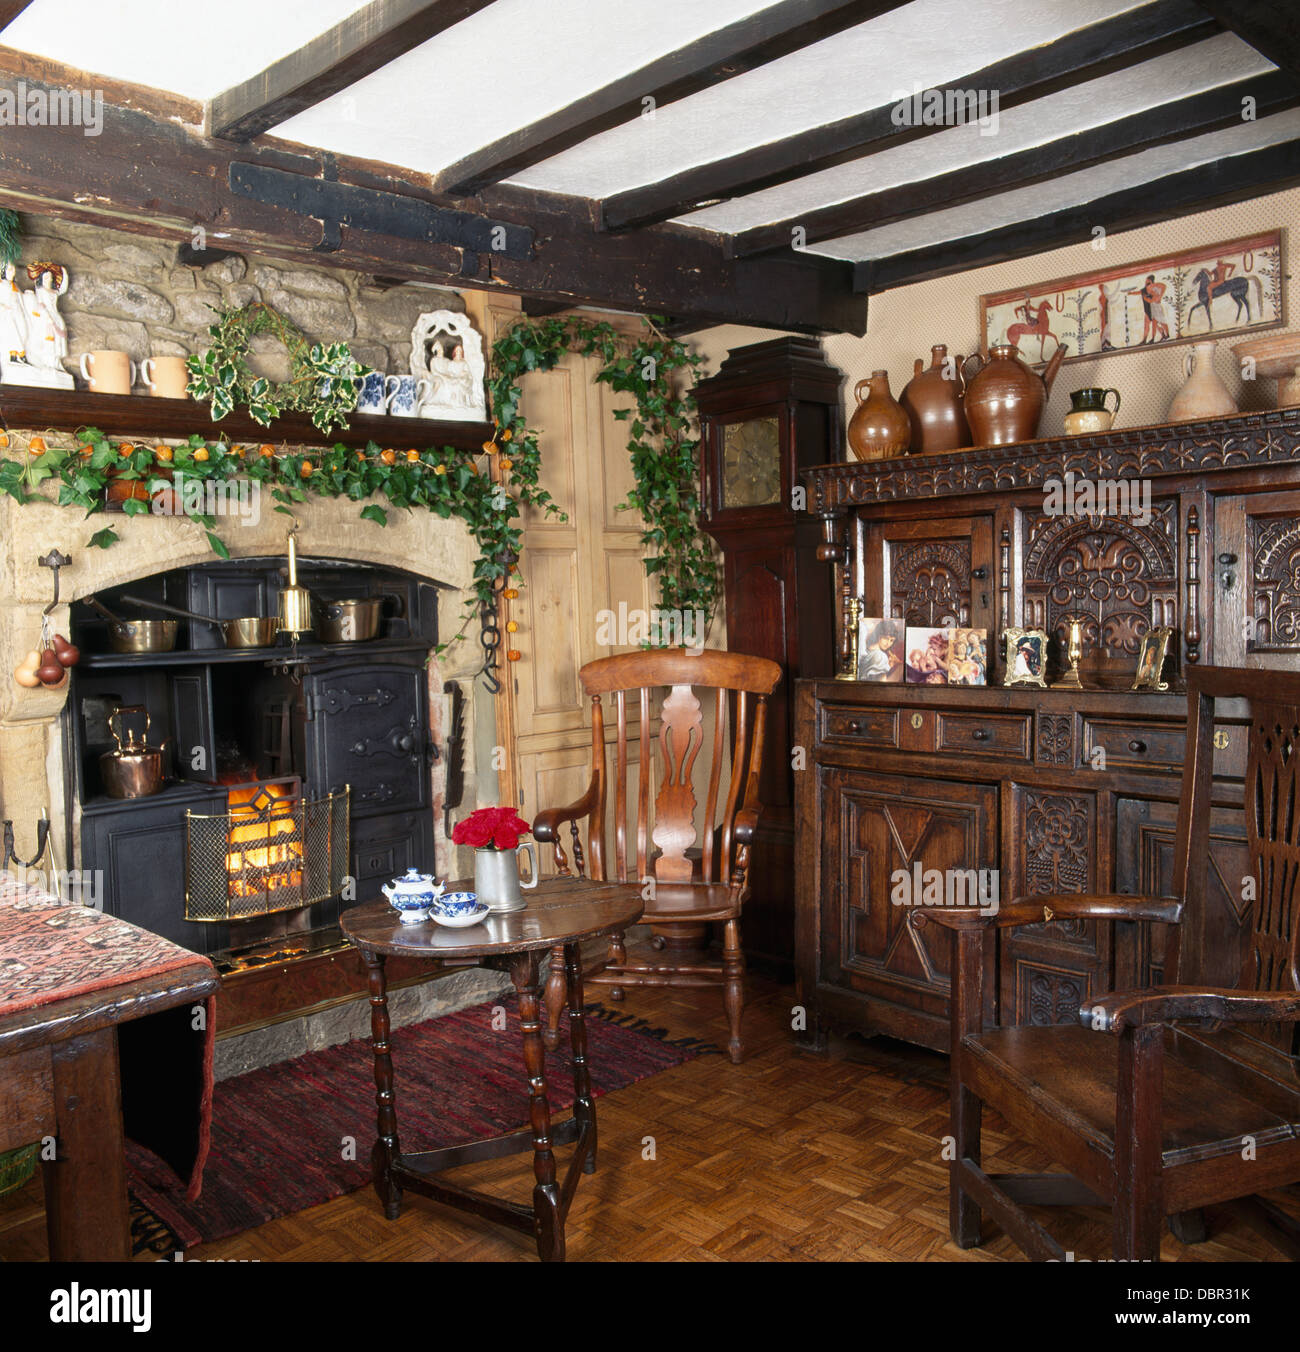 Ivy Christmas garland above old range in country dining room with Jacobean-style carved wood dresser and chair Stock Photo